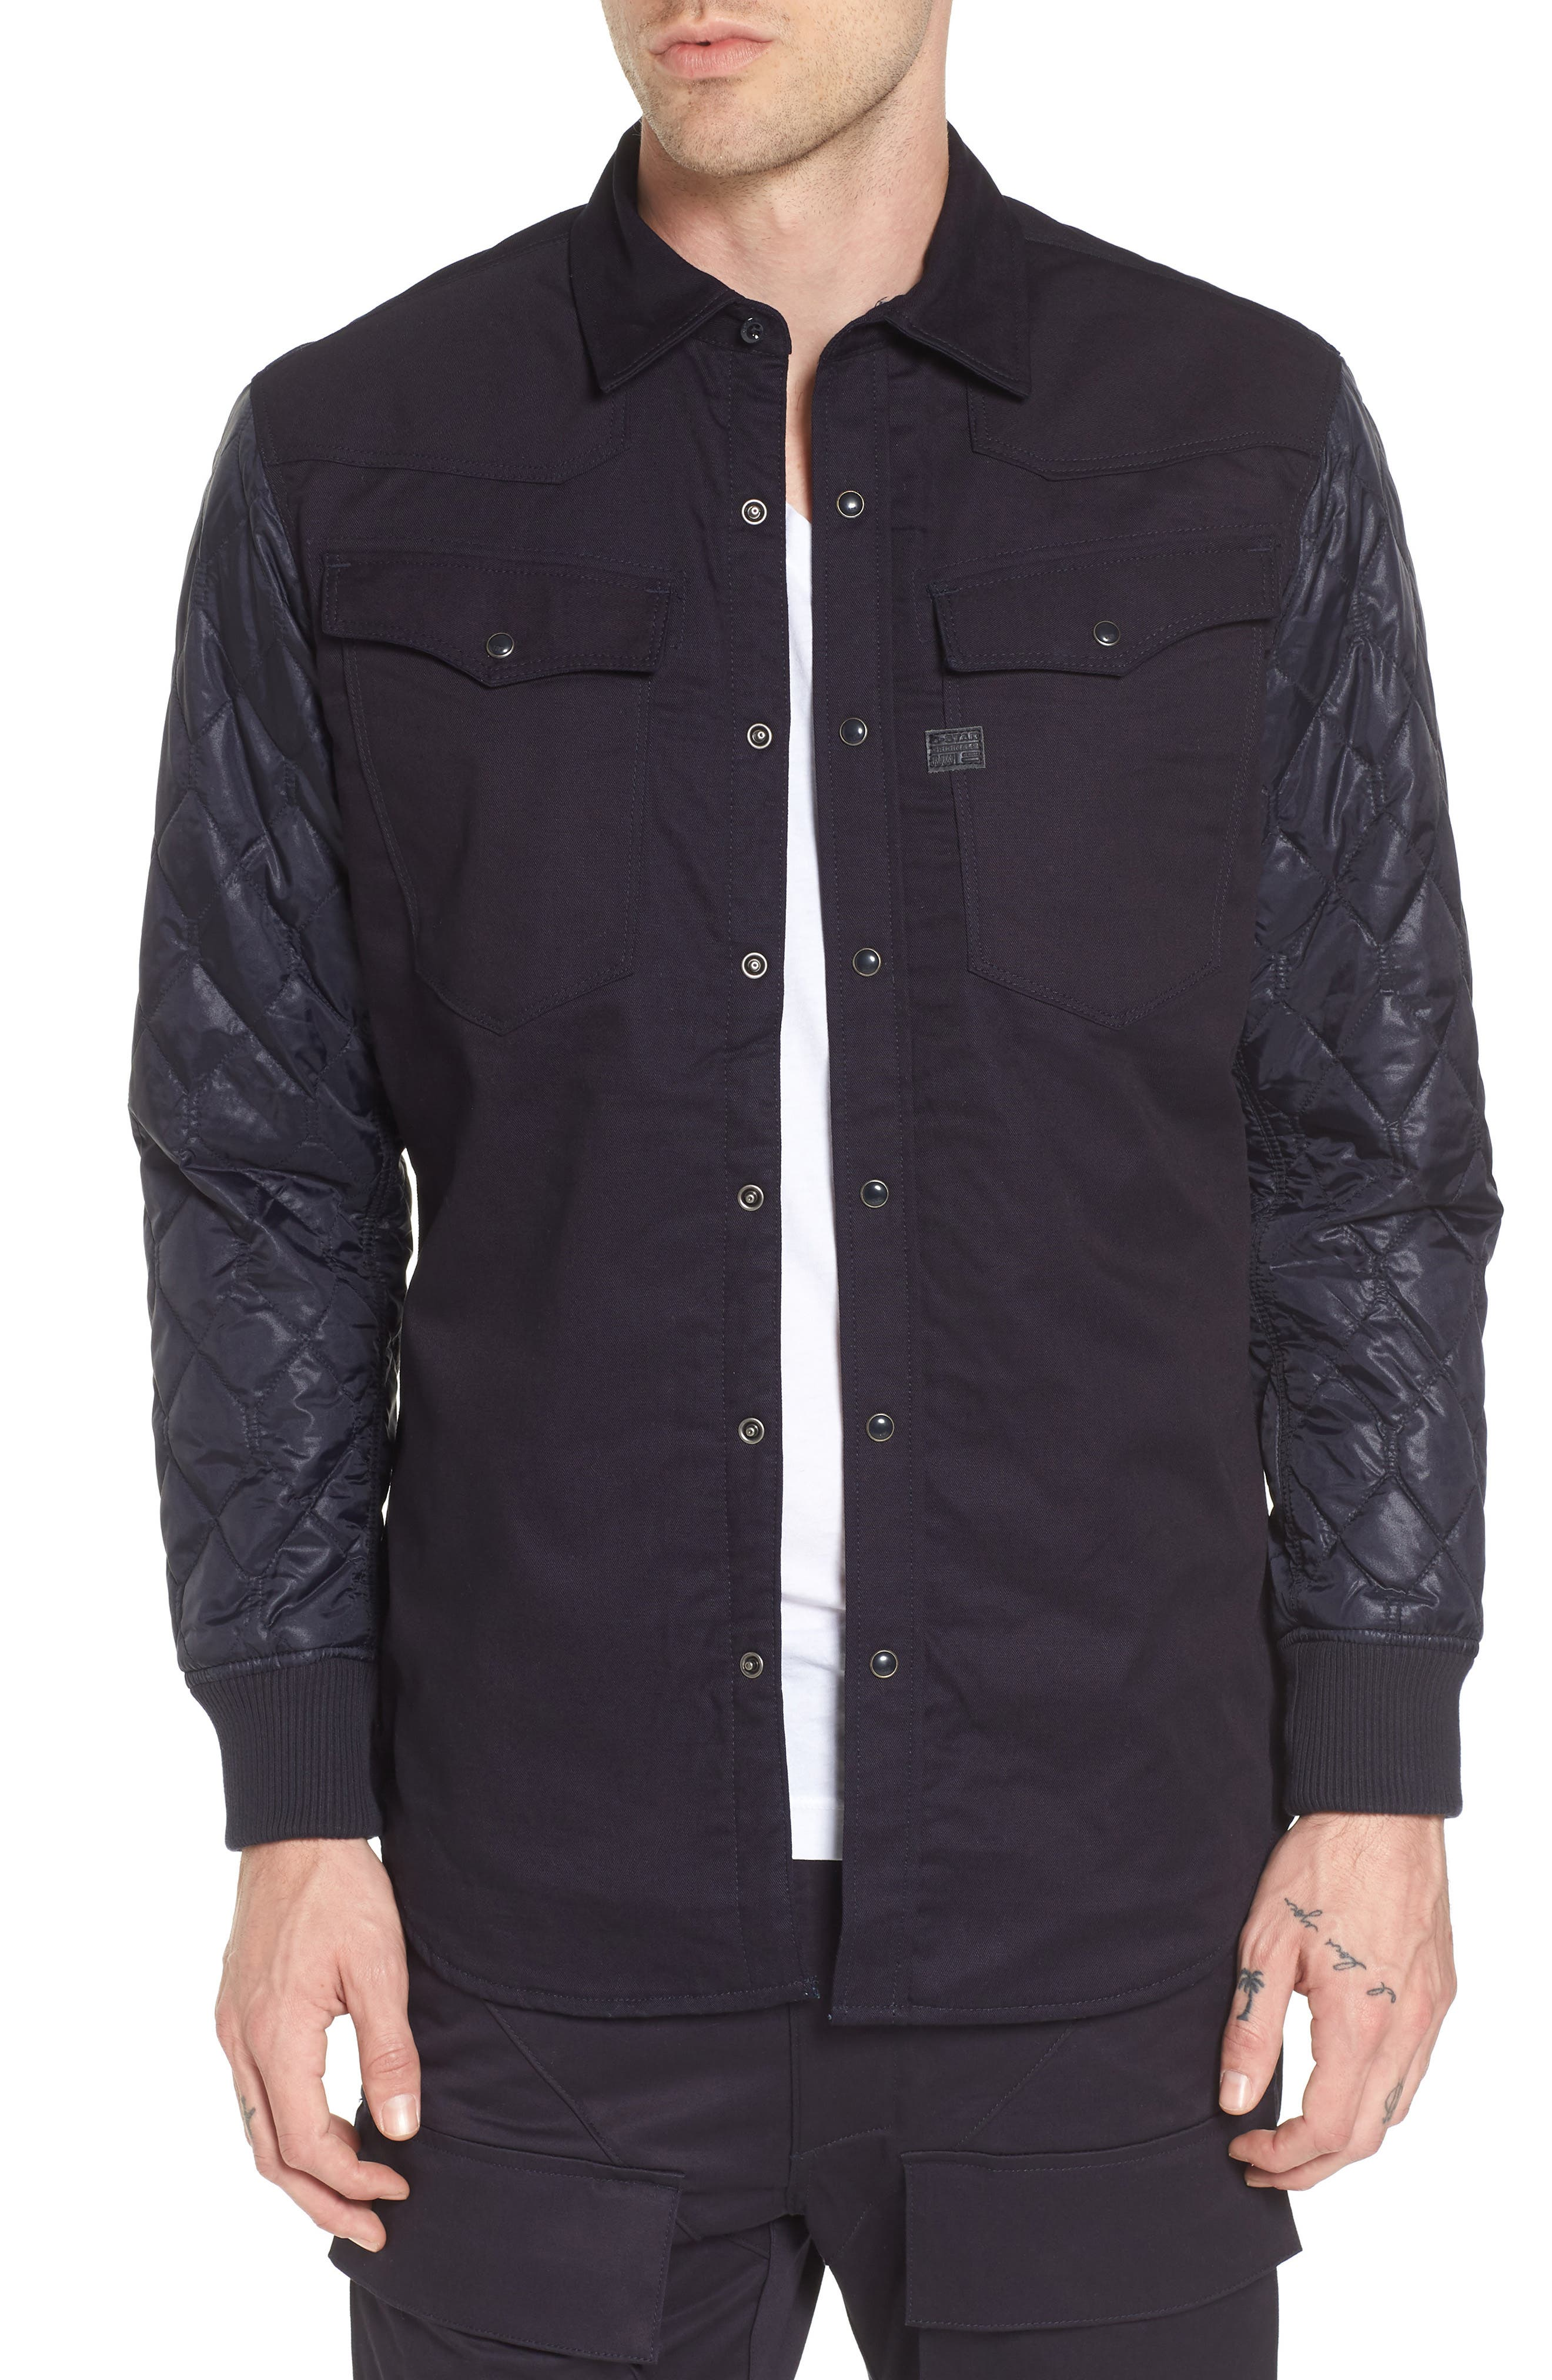 G-Star Raw 3301 HC Quilted Shirt Jacket